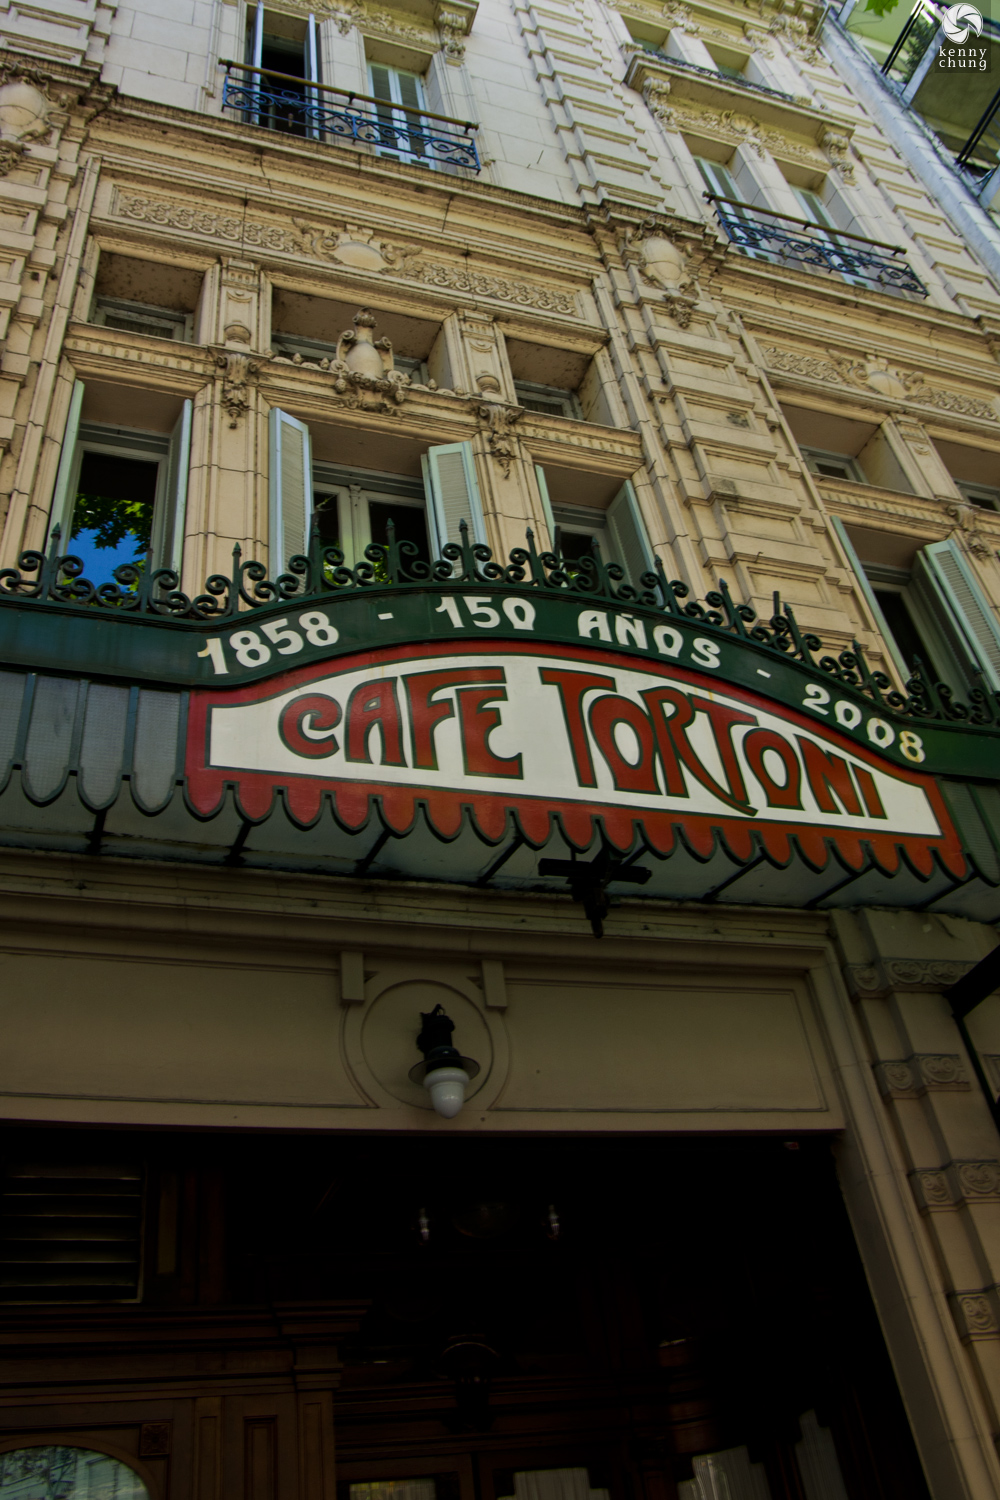 Door and logo for Cafe Tortoni in Buenos Aires